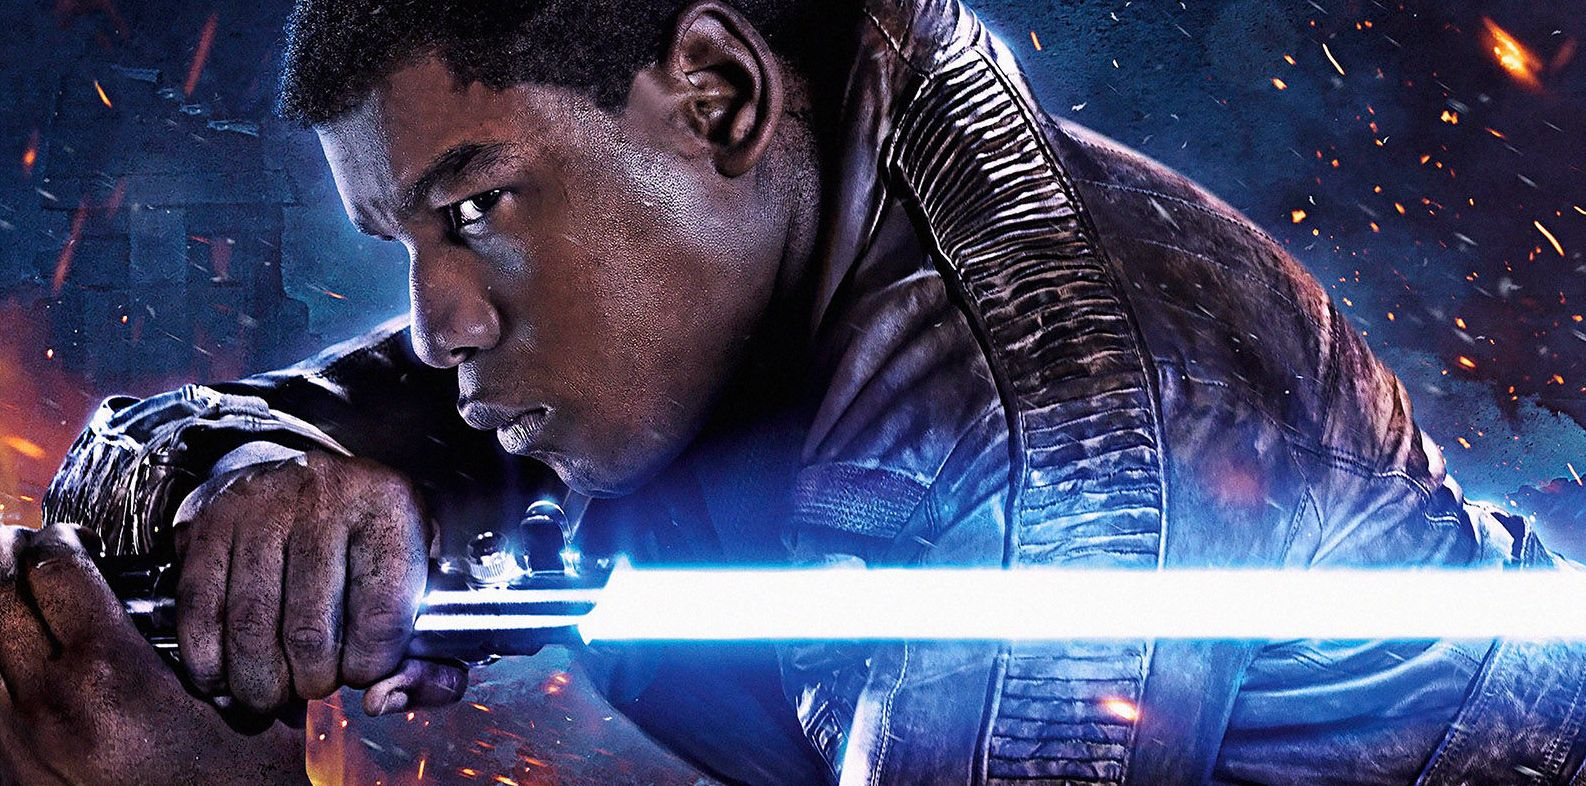 John Boyega, Star Wars: The Force Awakens